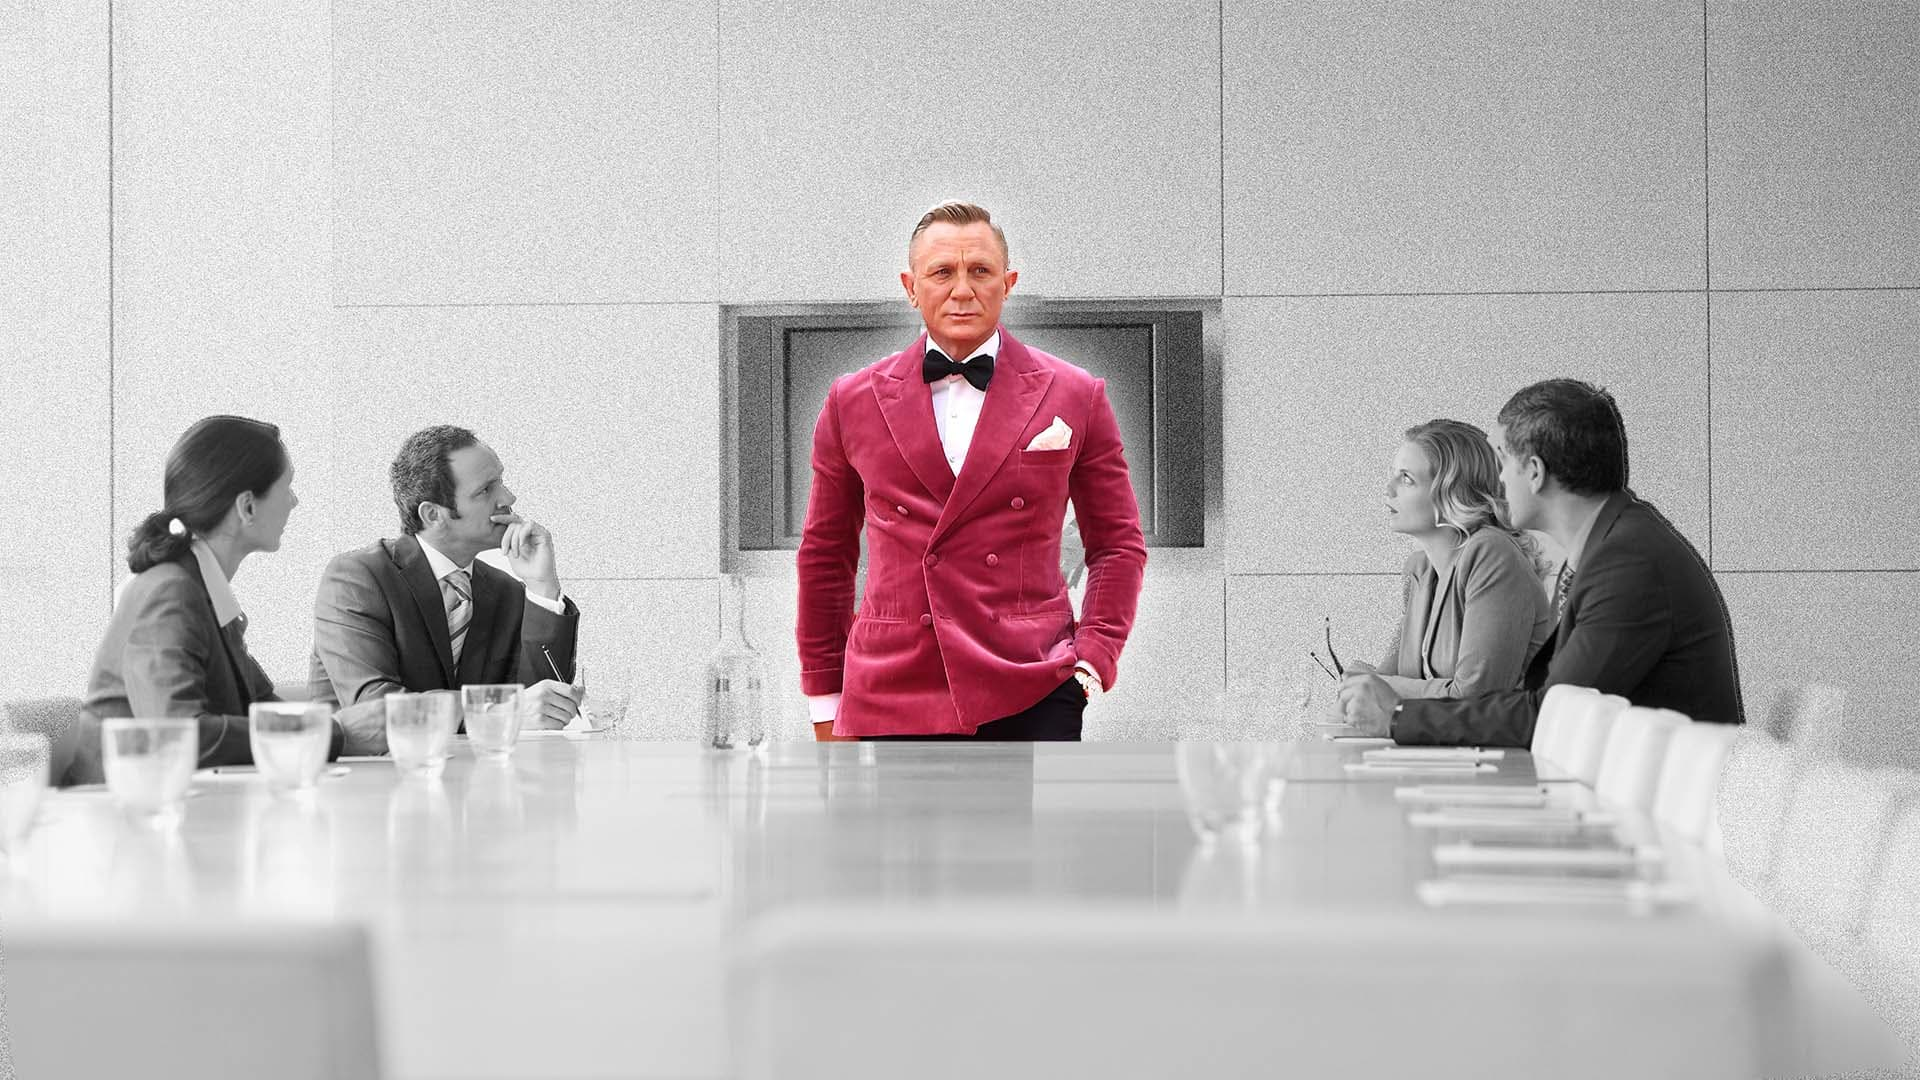 The Surprising Secret James Bond Taught Us About How to Communicate at Work